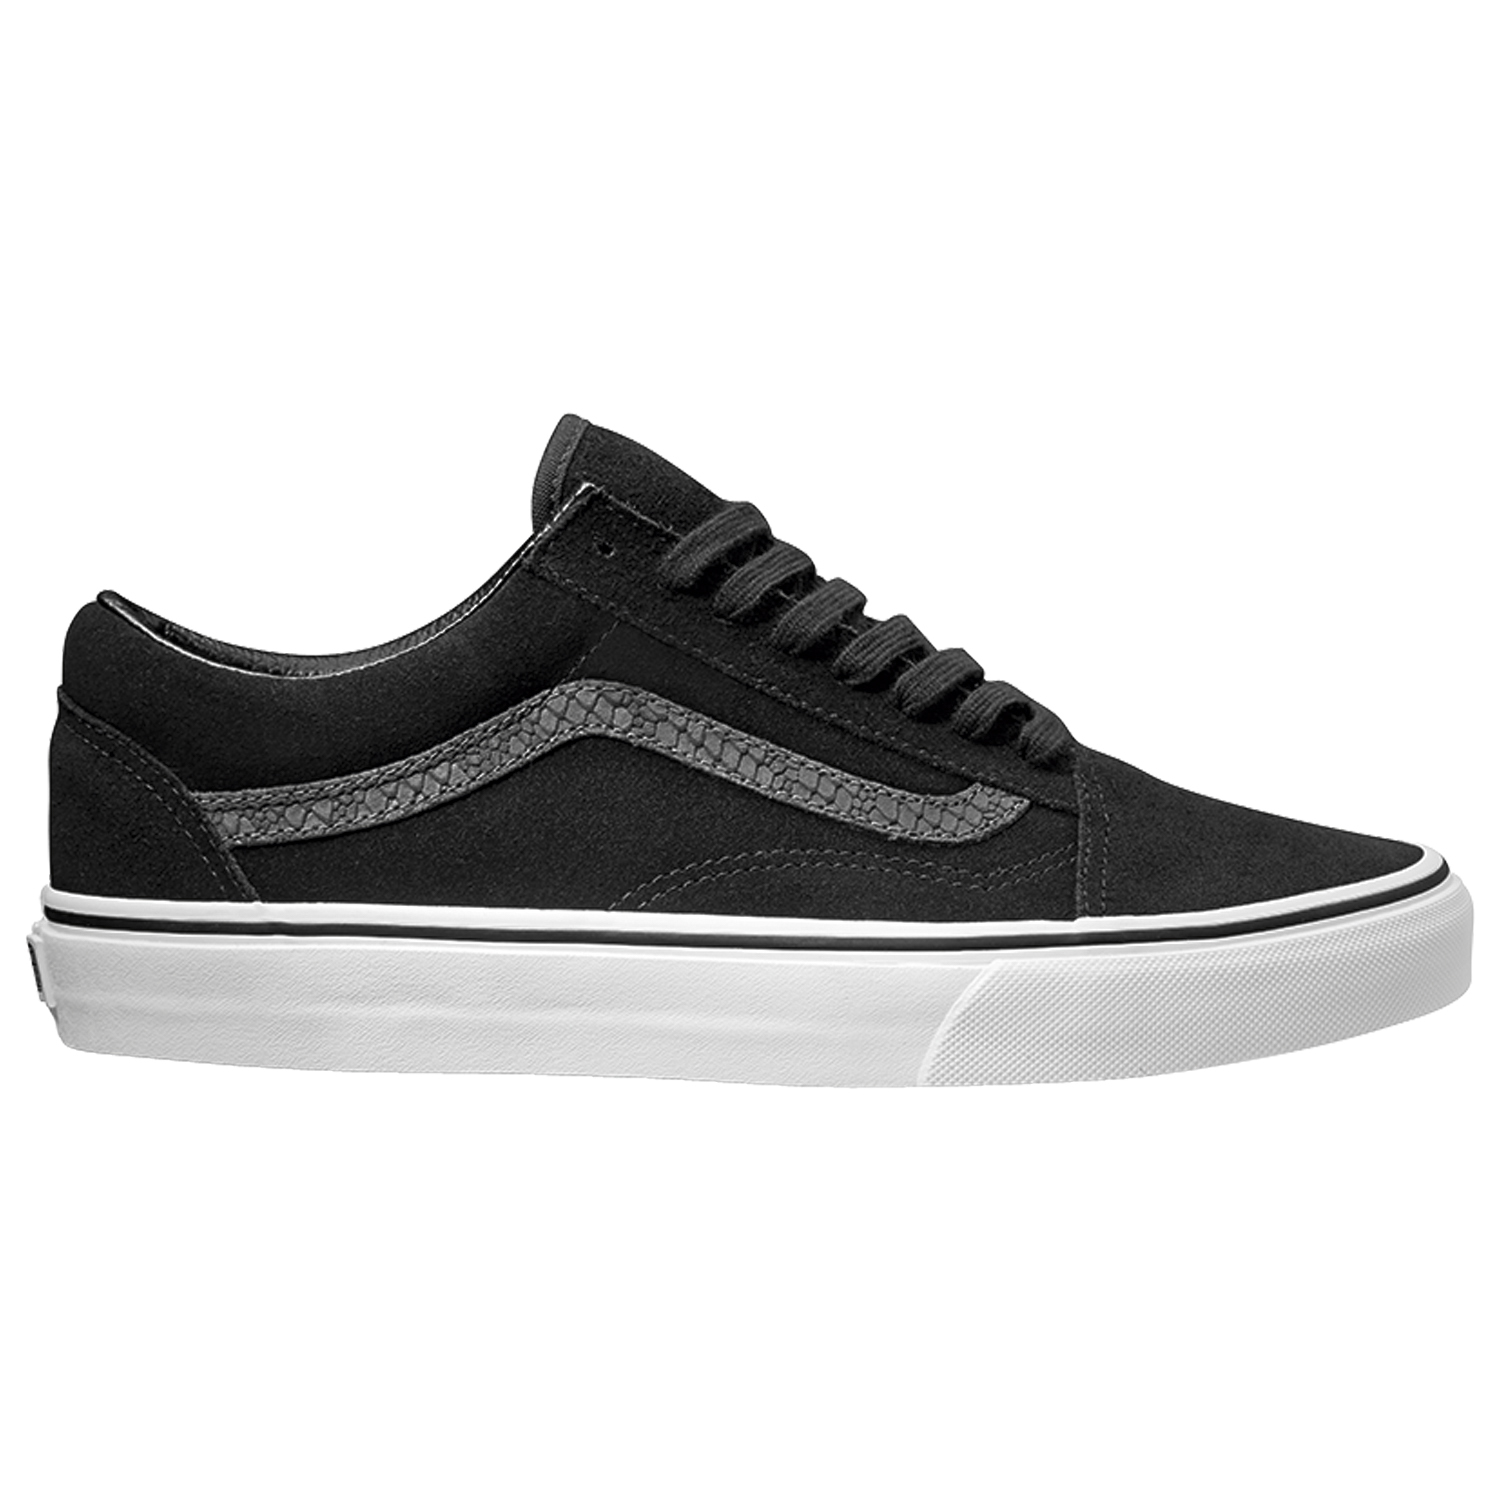 vans-old-skool-reptile-black-tornado-179-90